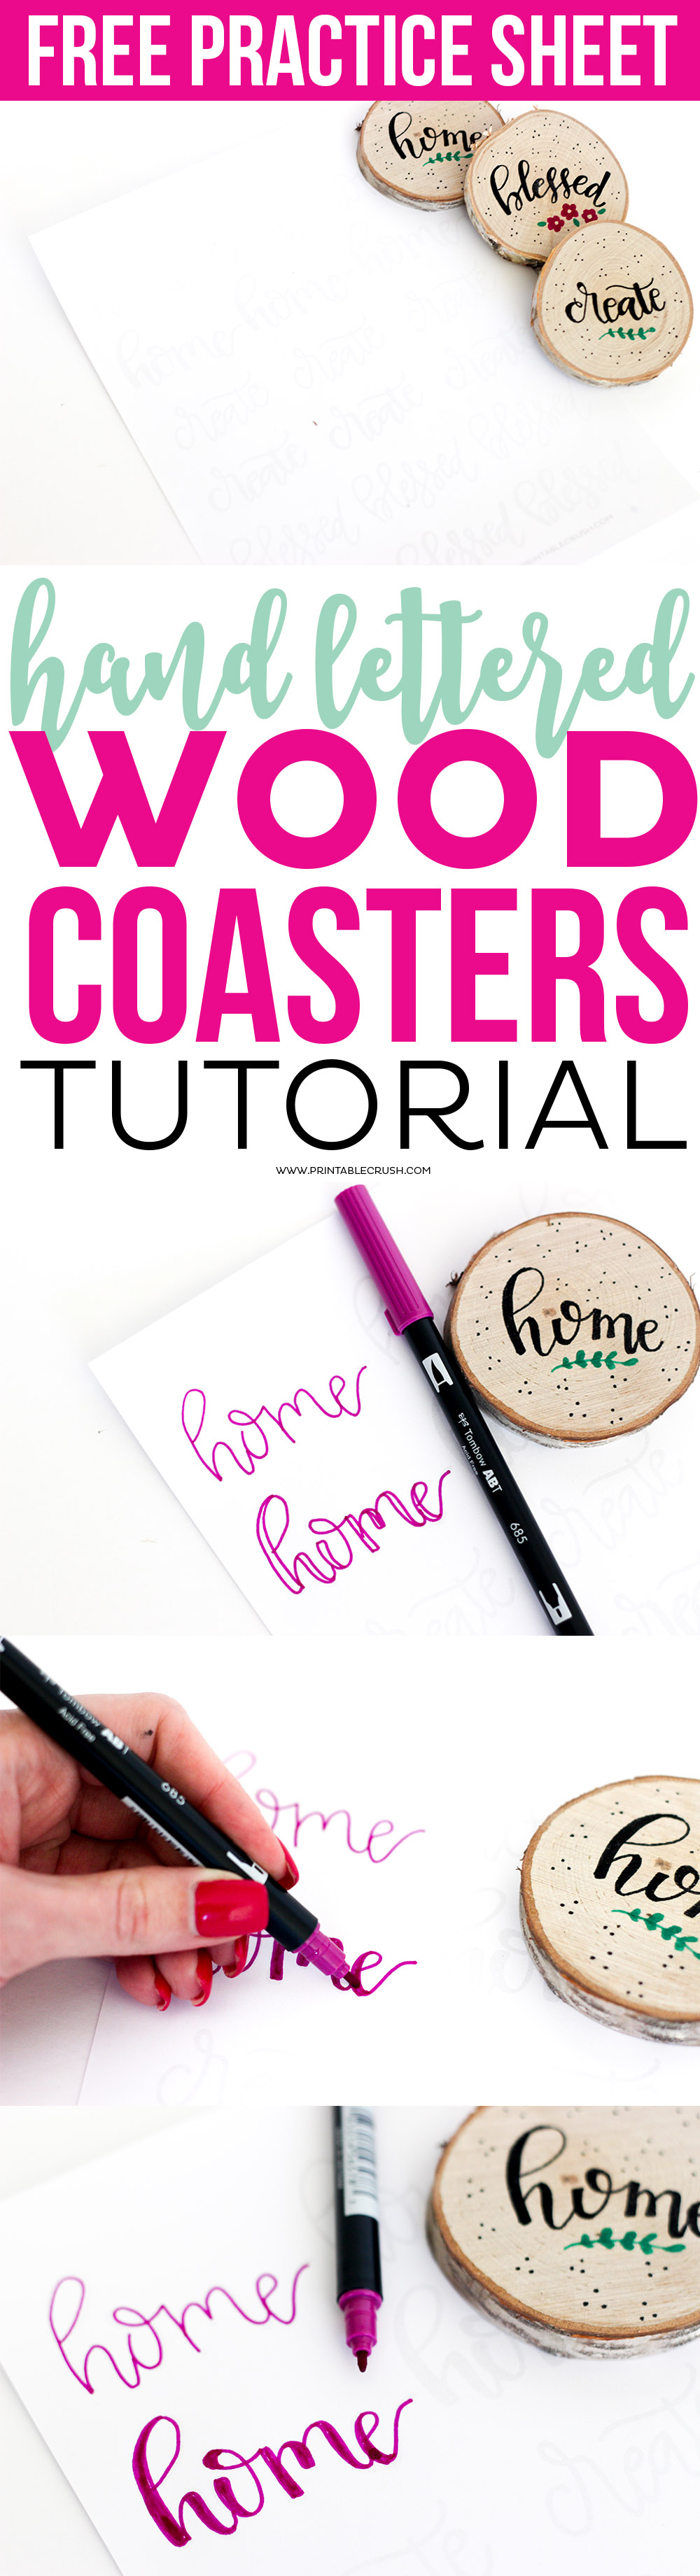 Creating these Hand Lettered Wood Coasters is SO easy with this tutorial. Includes free hand lettering practice sheet so you can practice or copy these cute words!